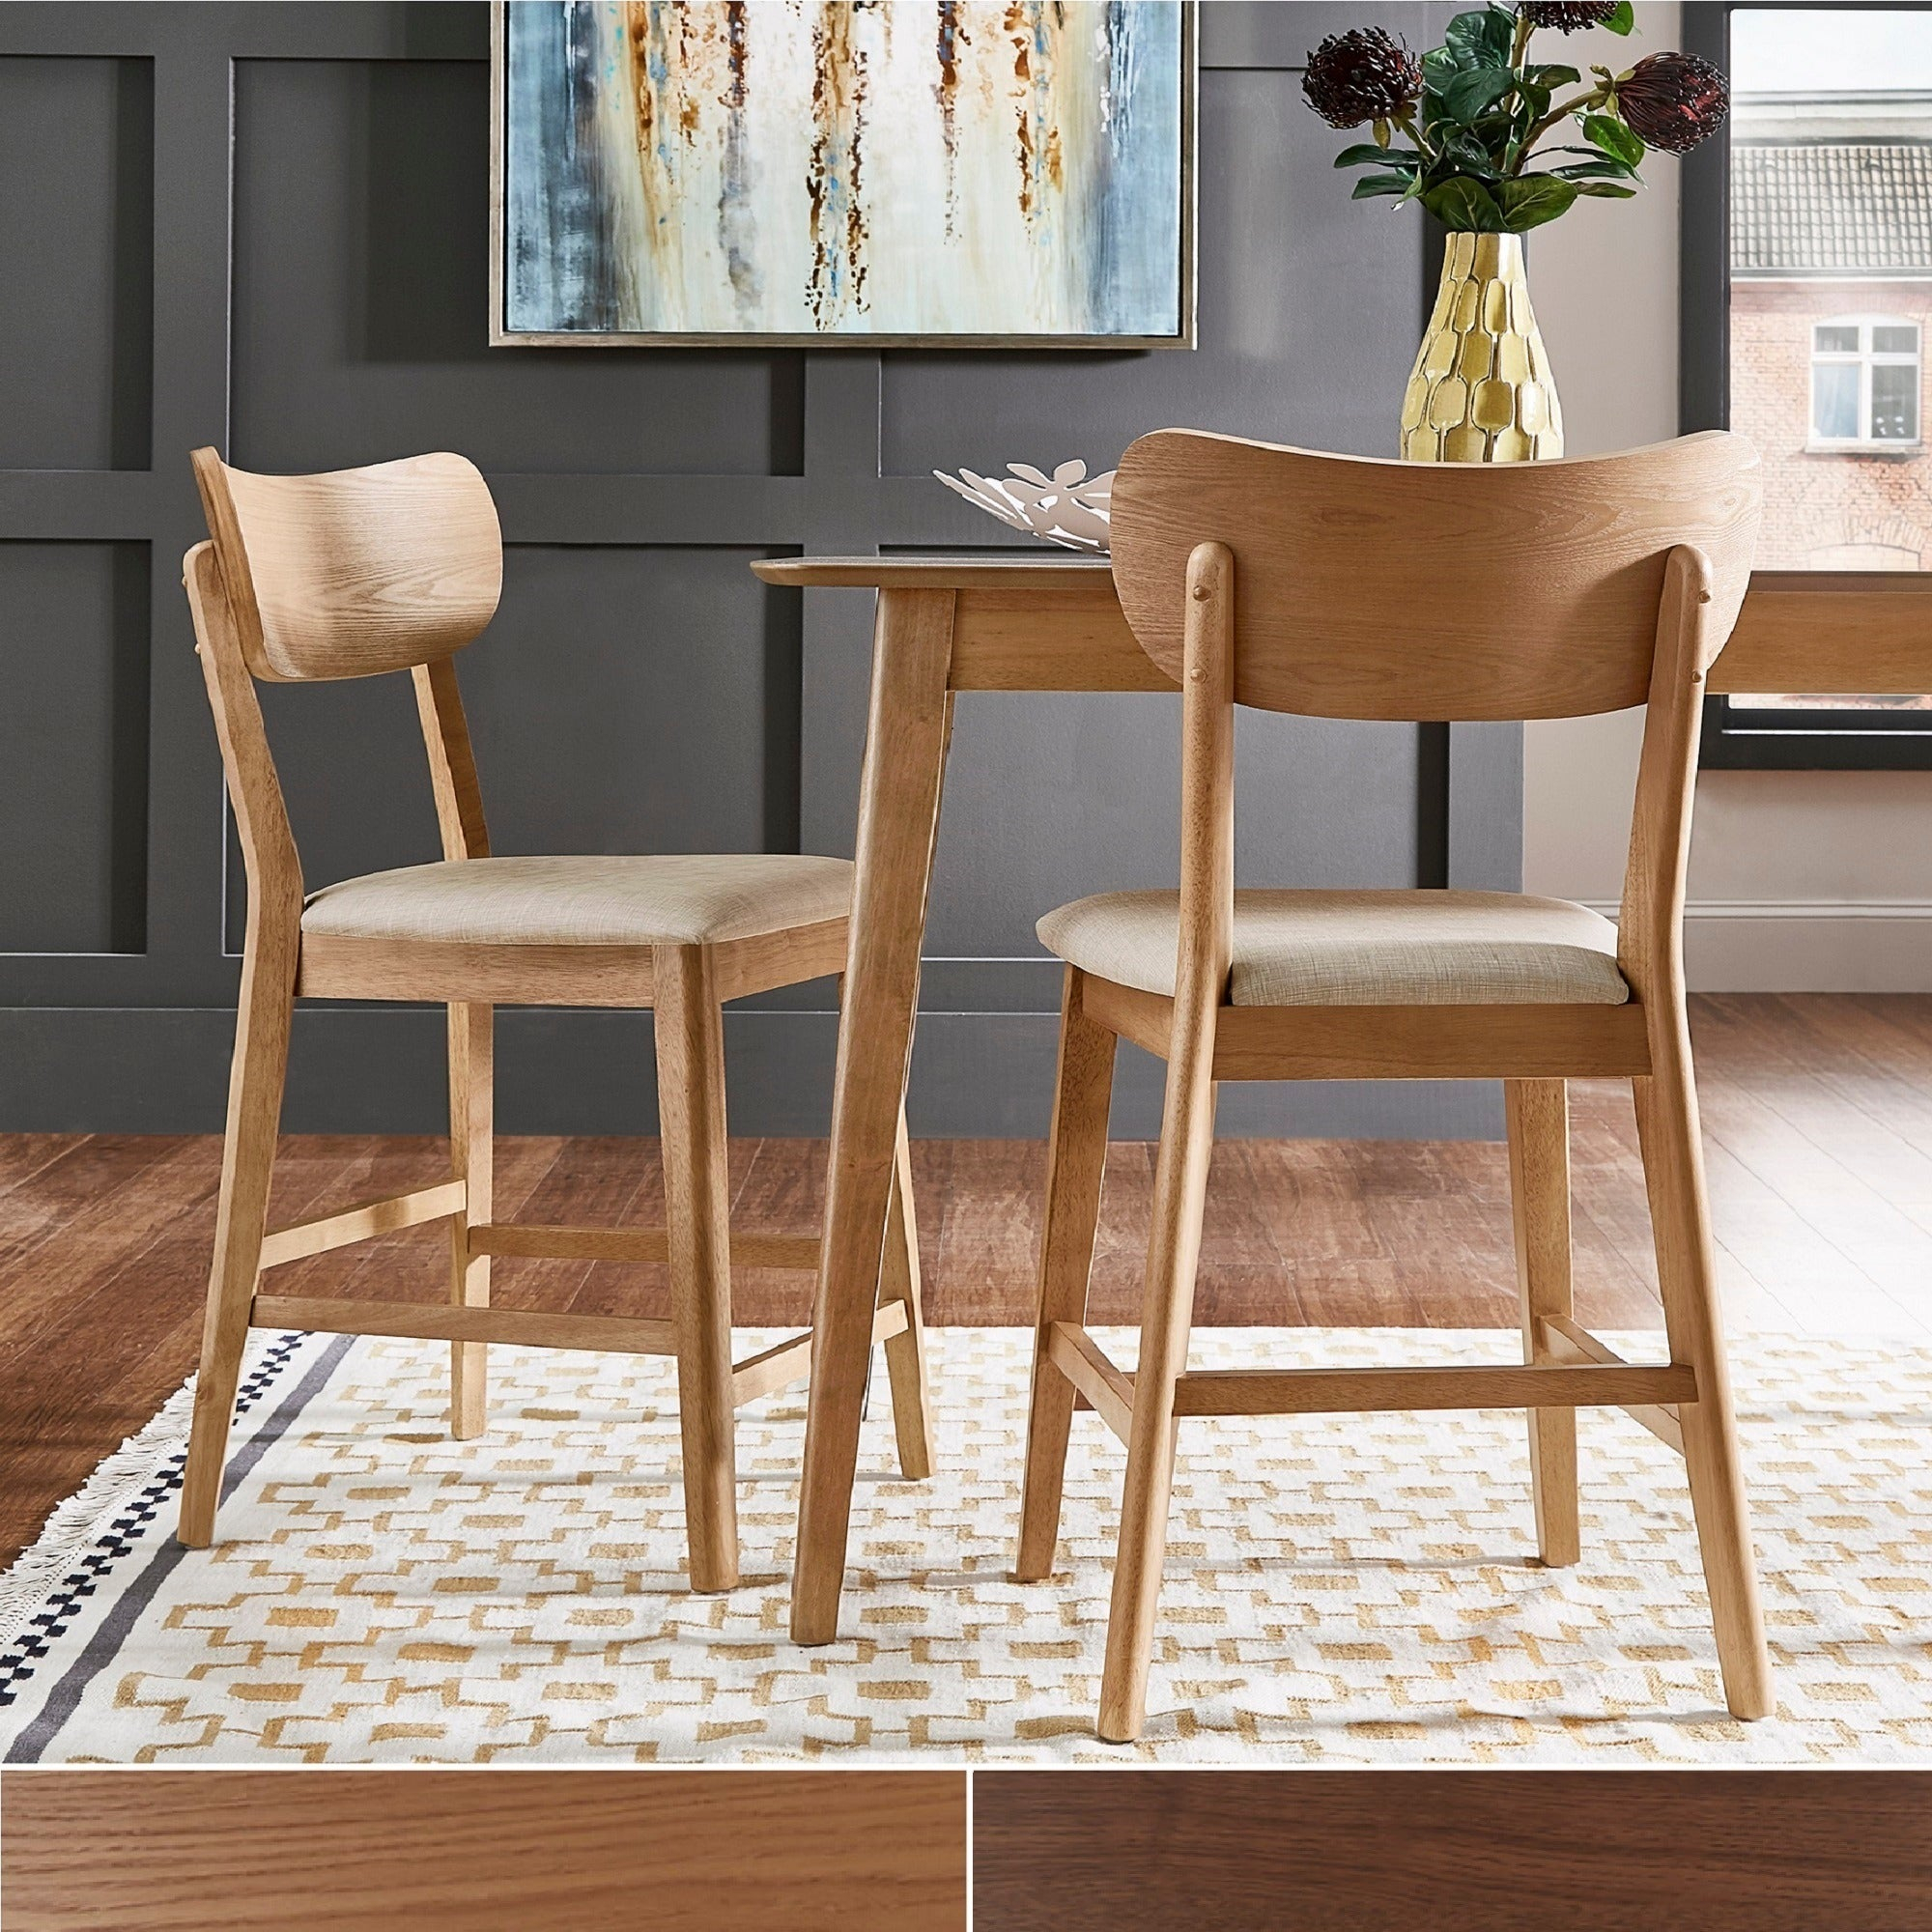 Penelope Danish Modern Tapered Leg Counter Height Chair (Set Of 2) Inspire Q Modern With Regard To Most Current Penelope 3 Piece Counter Height Wood Dining Sets (View 2 of 20)